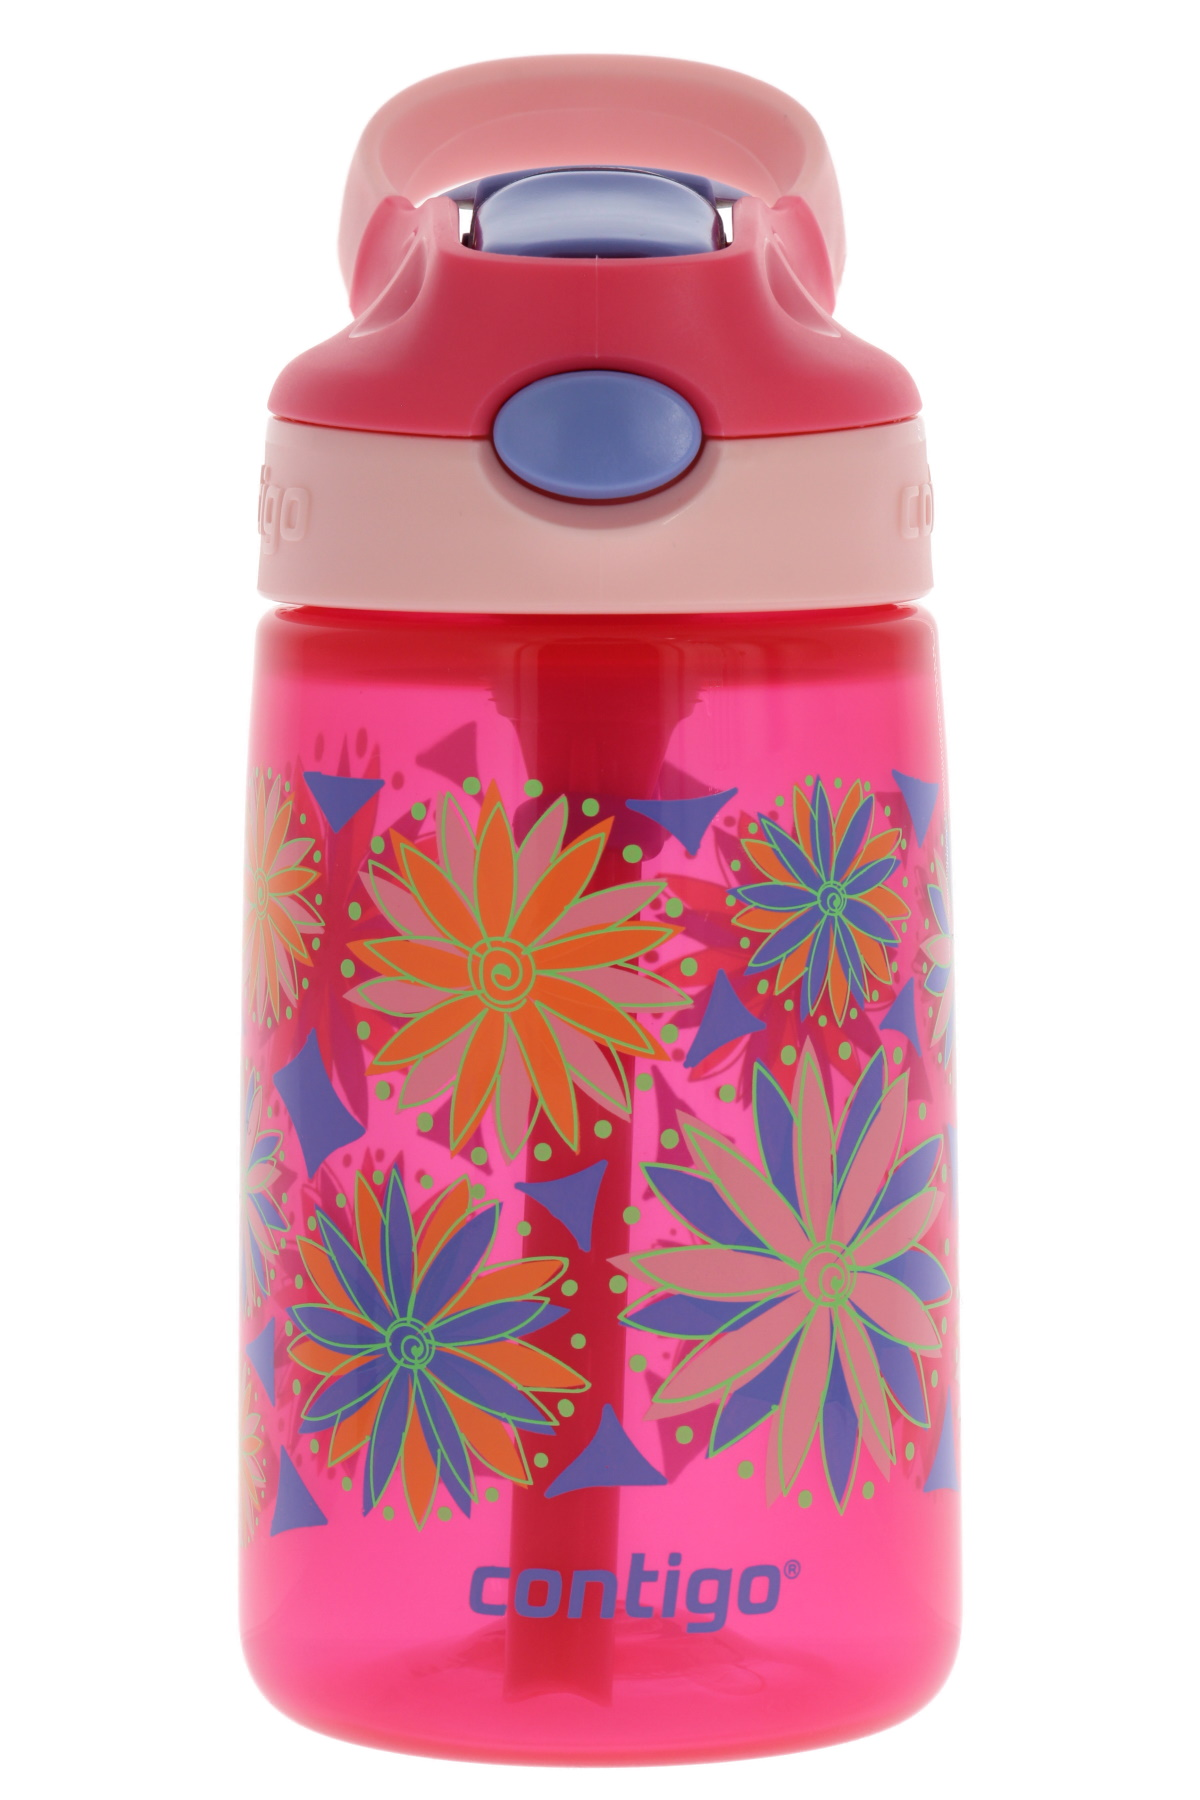 Cherry Blossom Pink BPA Free Drinks Bottle for Children Leakproof Flask Ideal for School and Sports 420 ml Contigo Gizmo Flip Autospout Kids Water Bottle with Flip Straw